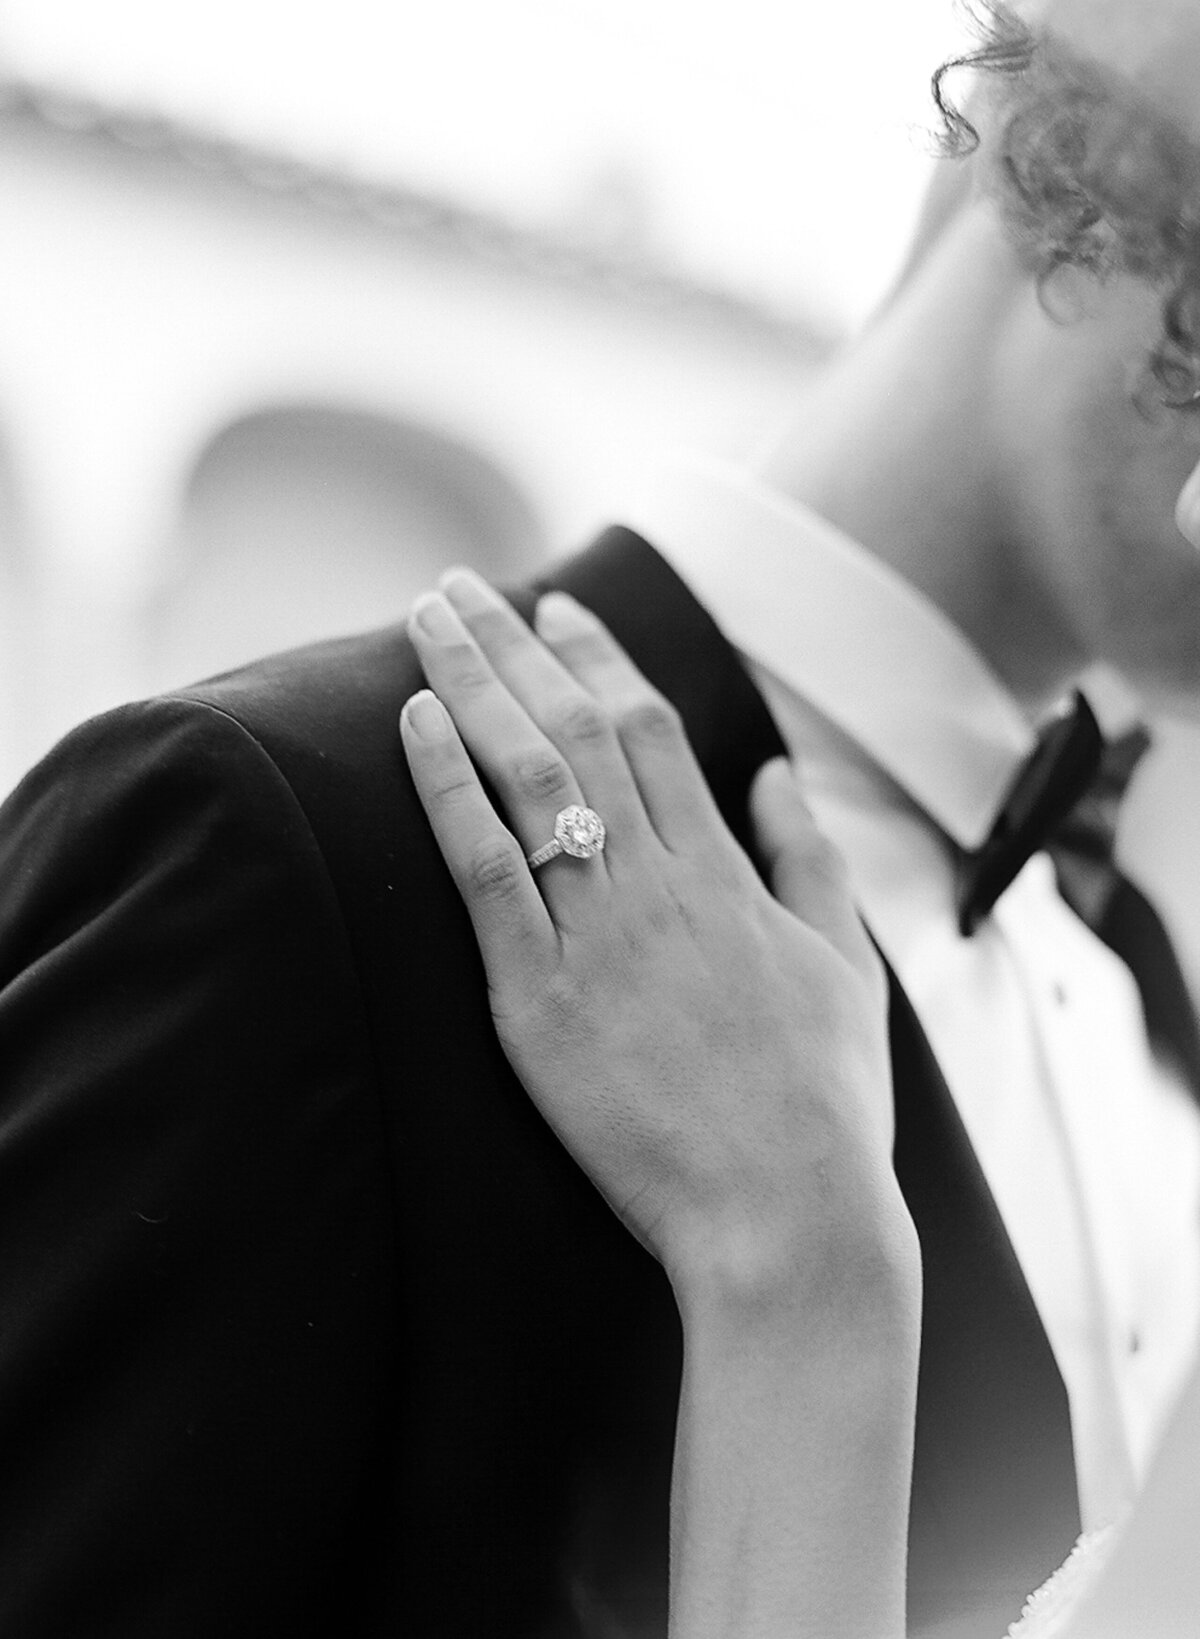 Black and white photo of bride's engagement ring